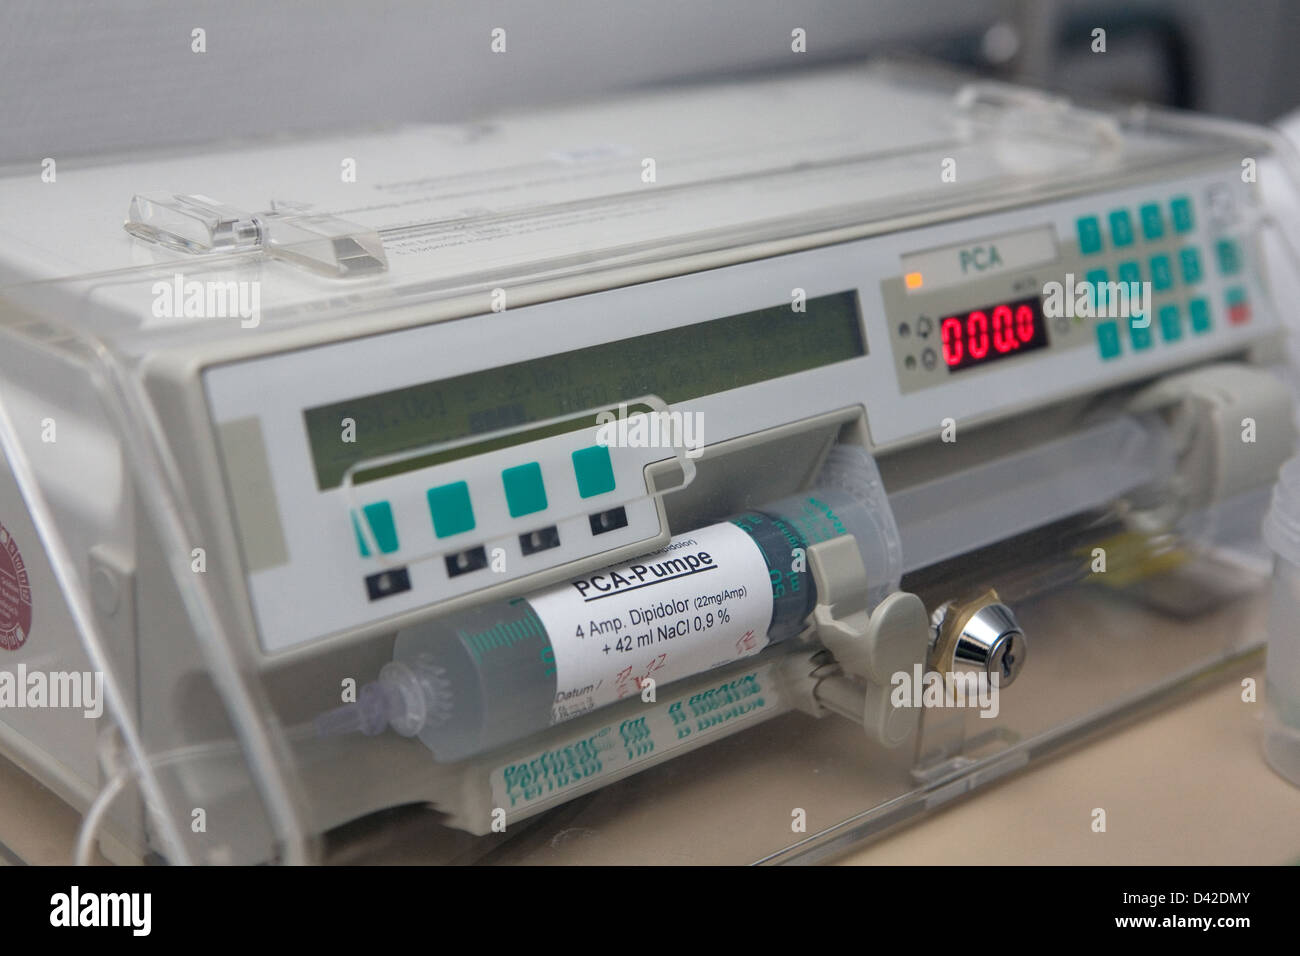 pca pump stock photos pca pump stock images alamy